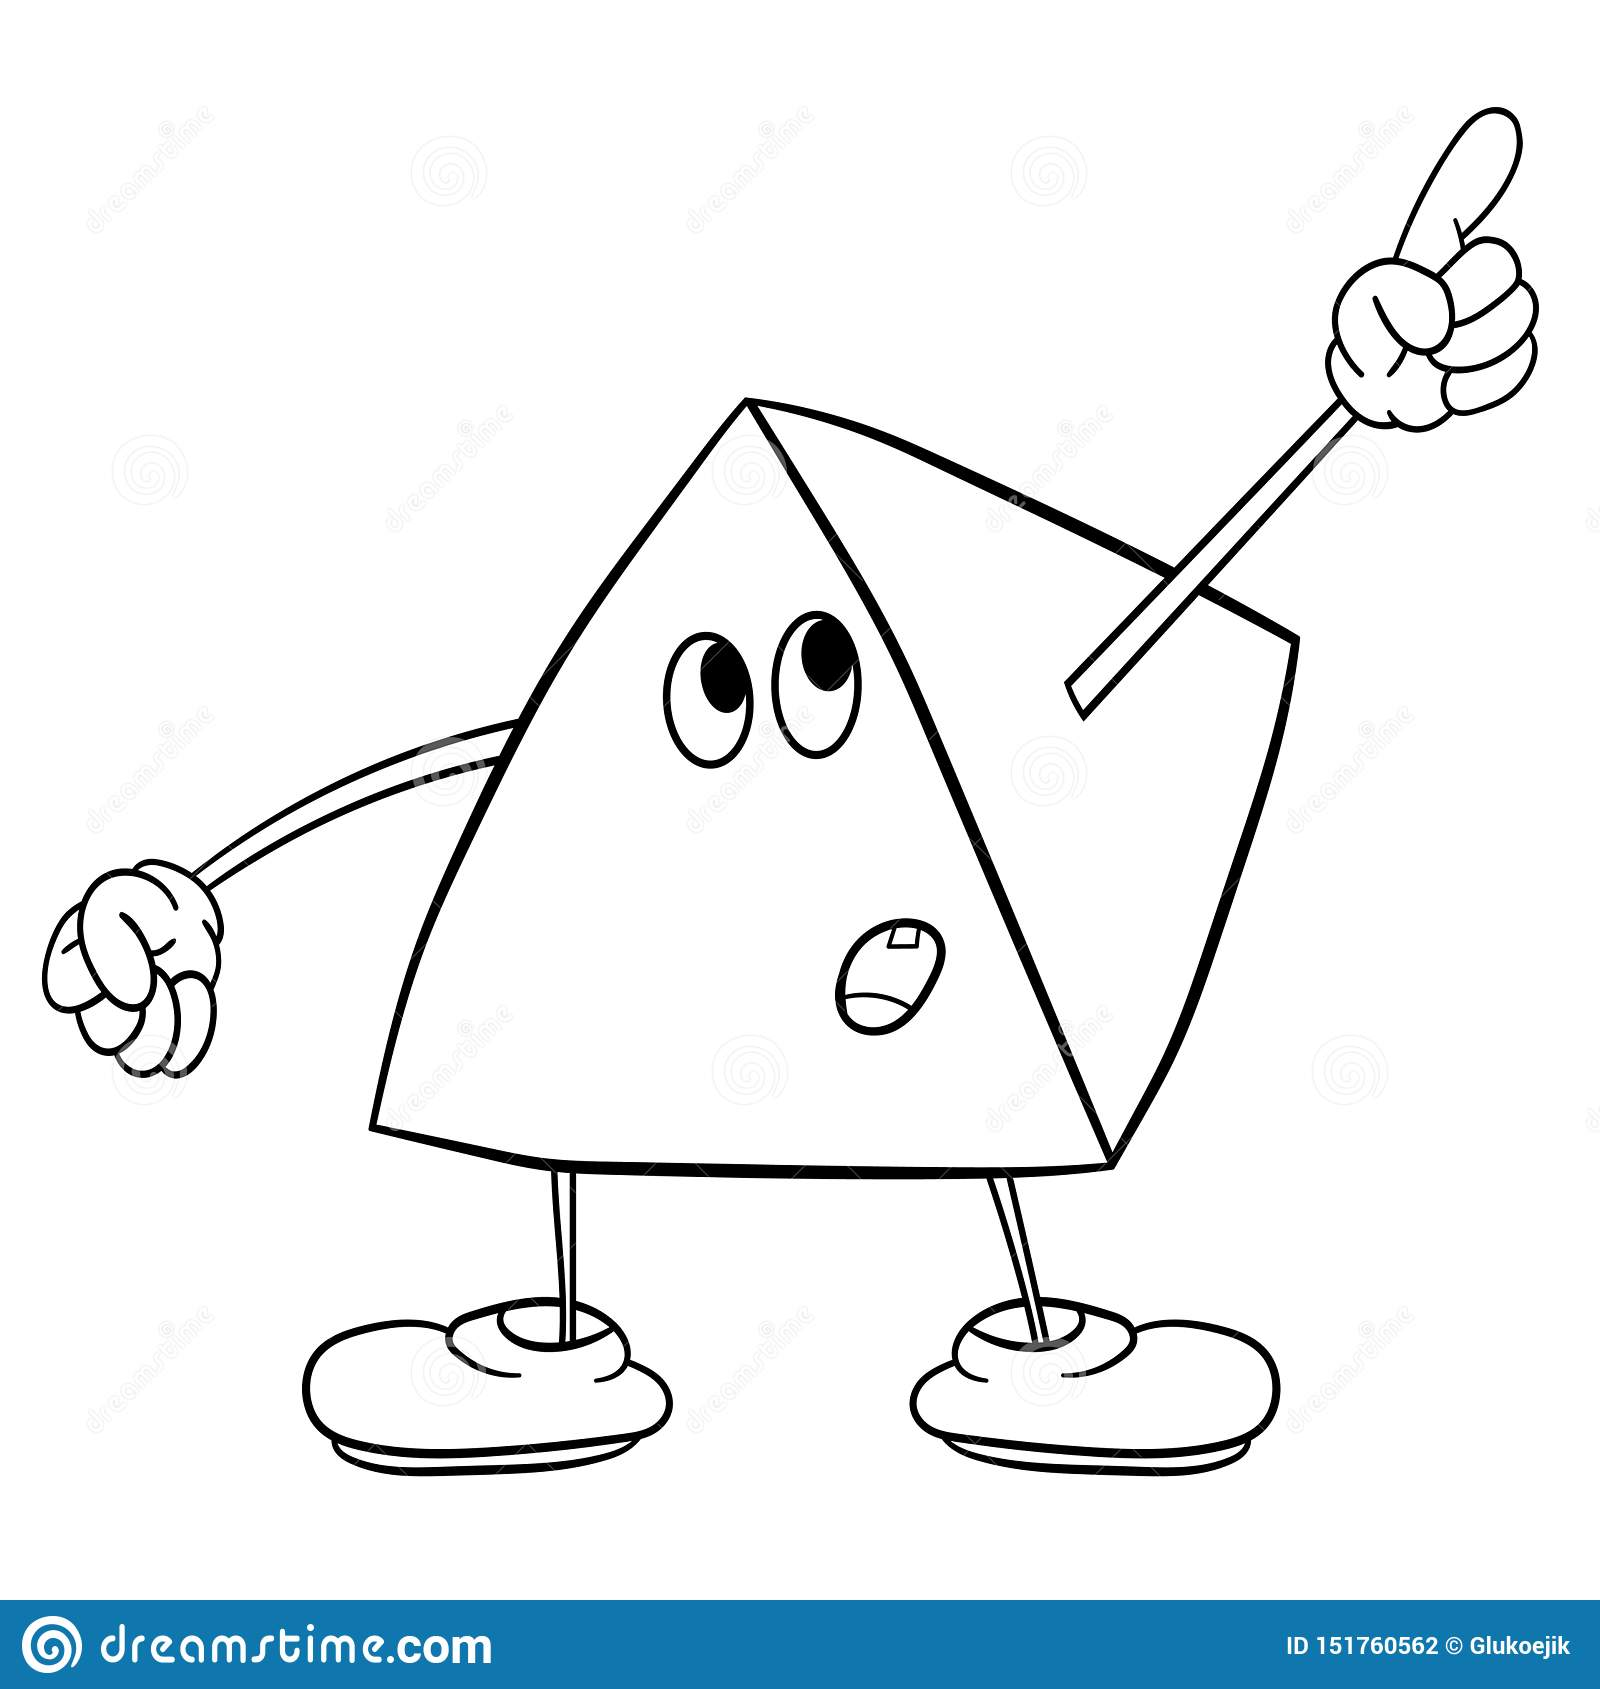 Funny Triangle Smiley With Legs And Eyes Showing One Finger Up ...